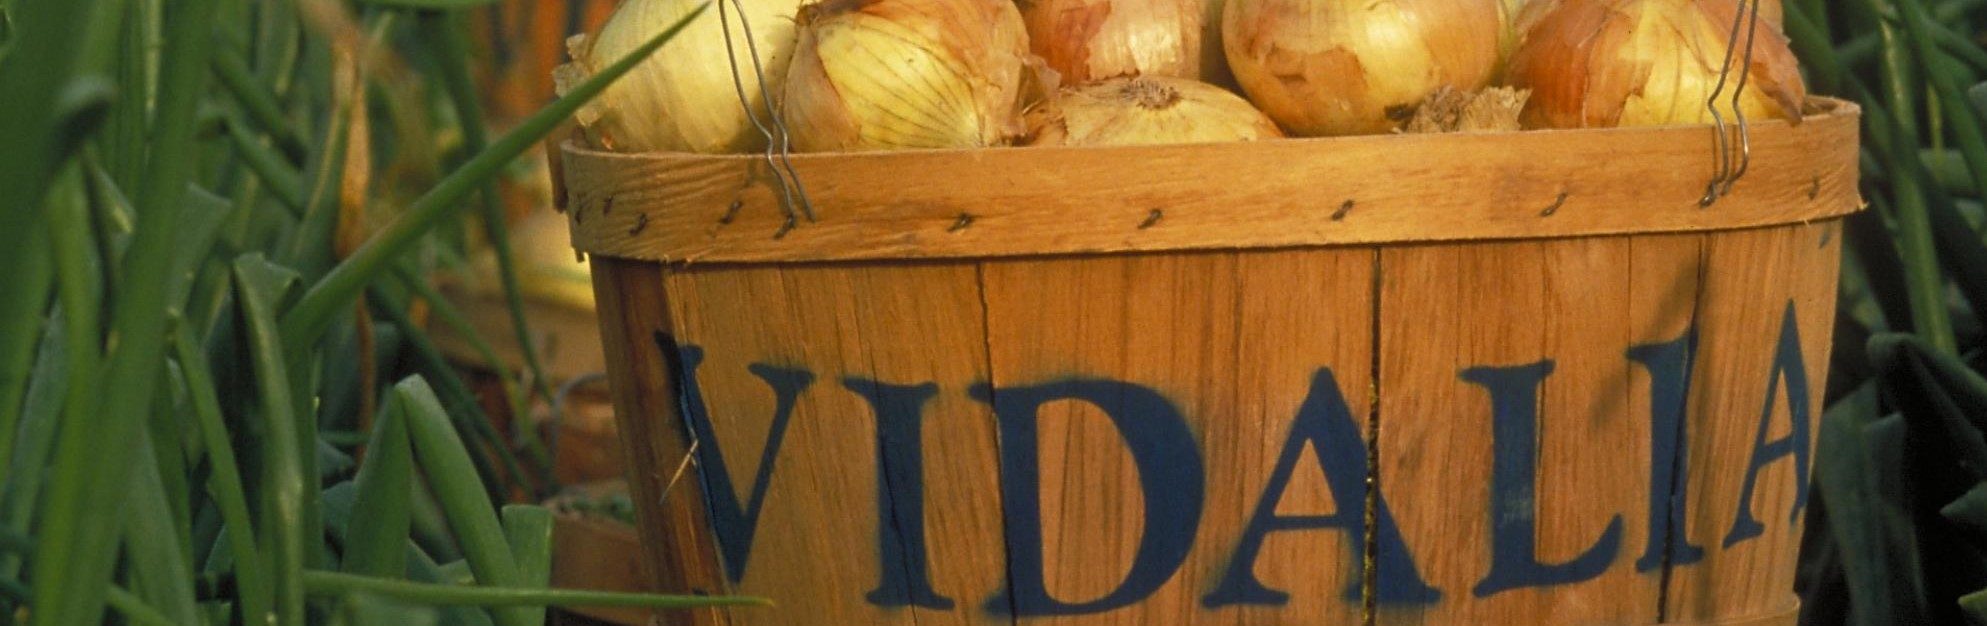 Check out our Top Selling Vidalia Onion Collection!